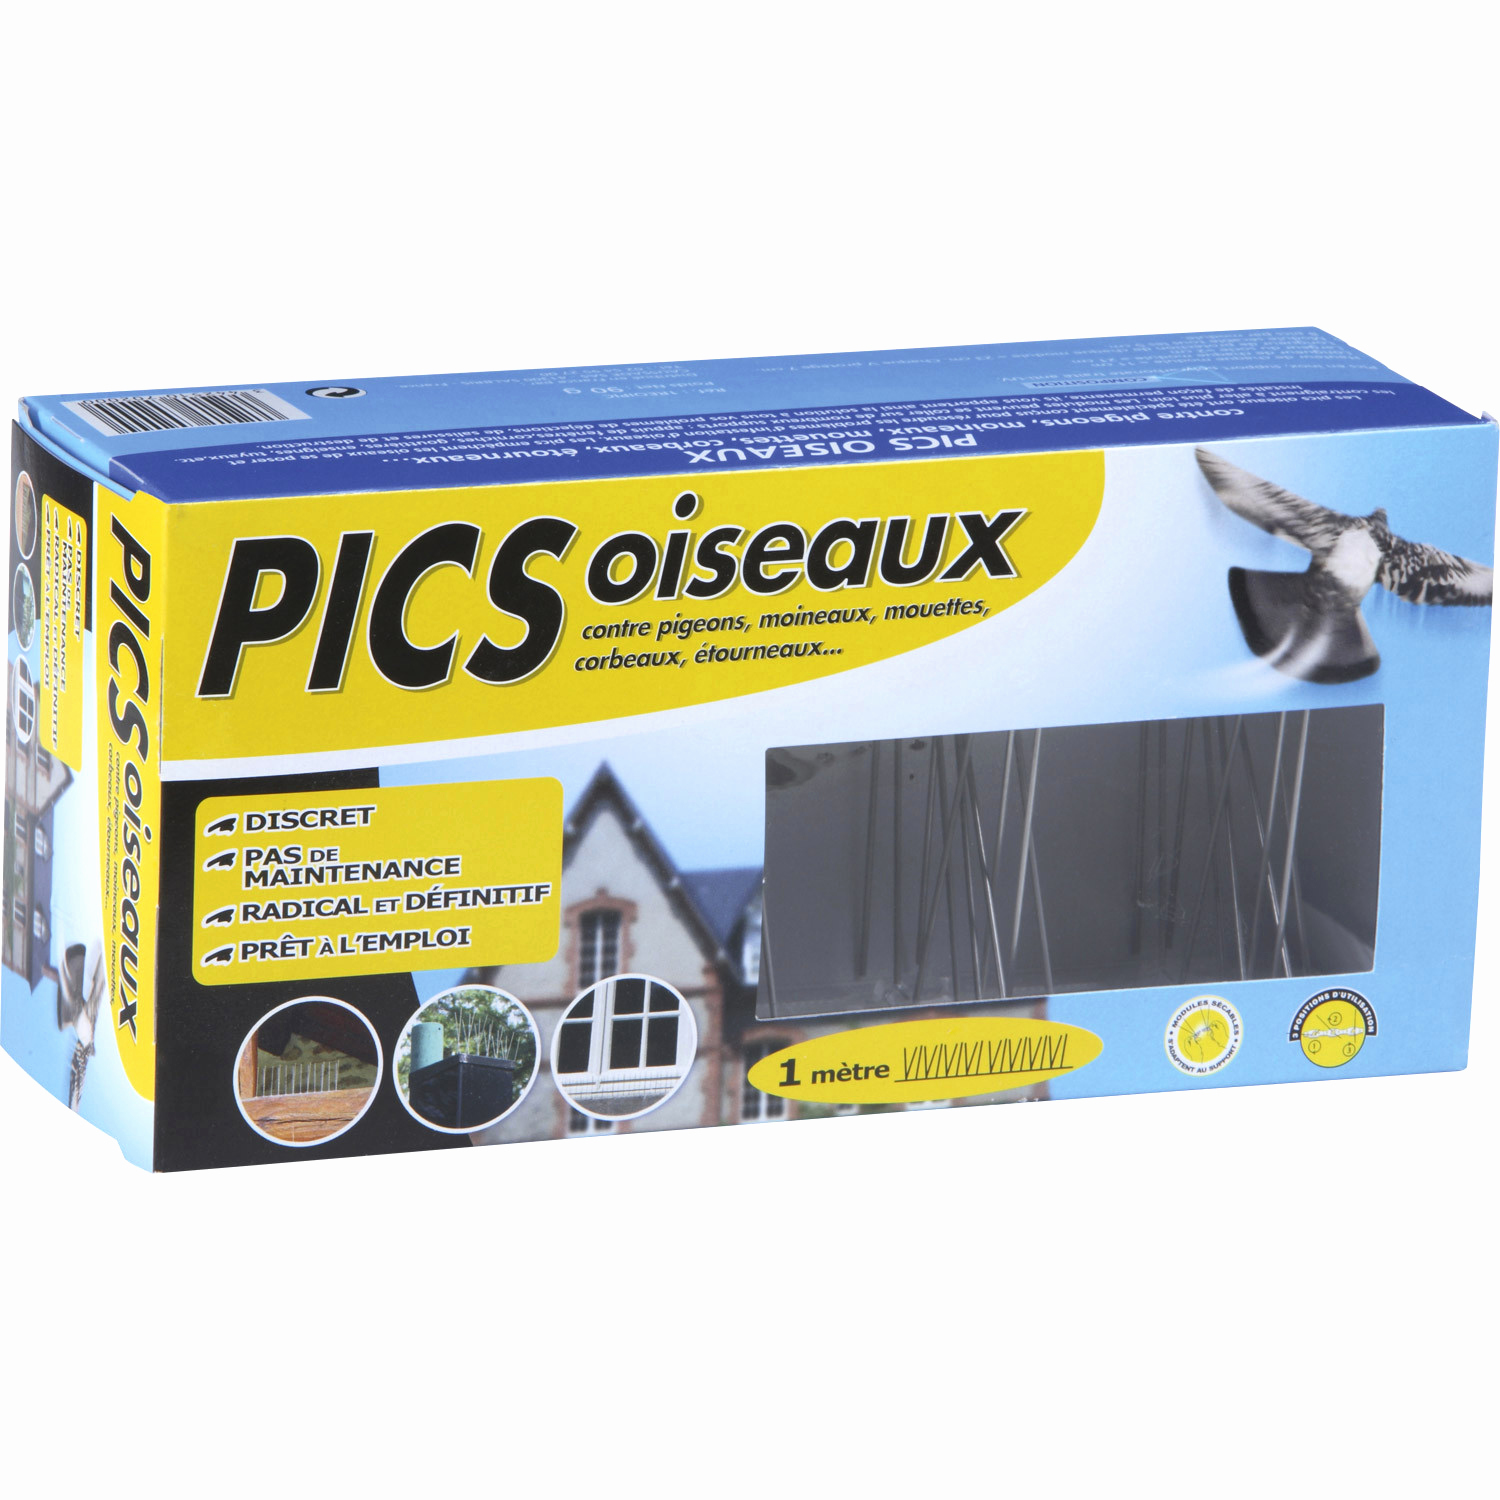 Pince Nappe Leroy Merlin Luxe Images Picots Anti Pigeons Leroy Merlin élégant Camera Factice Leroy Merlin